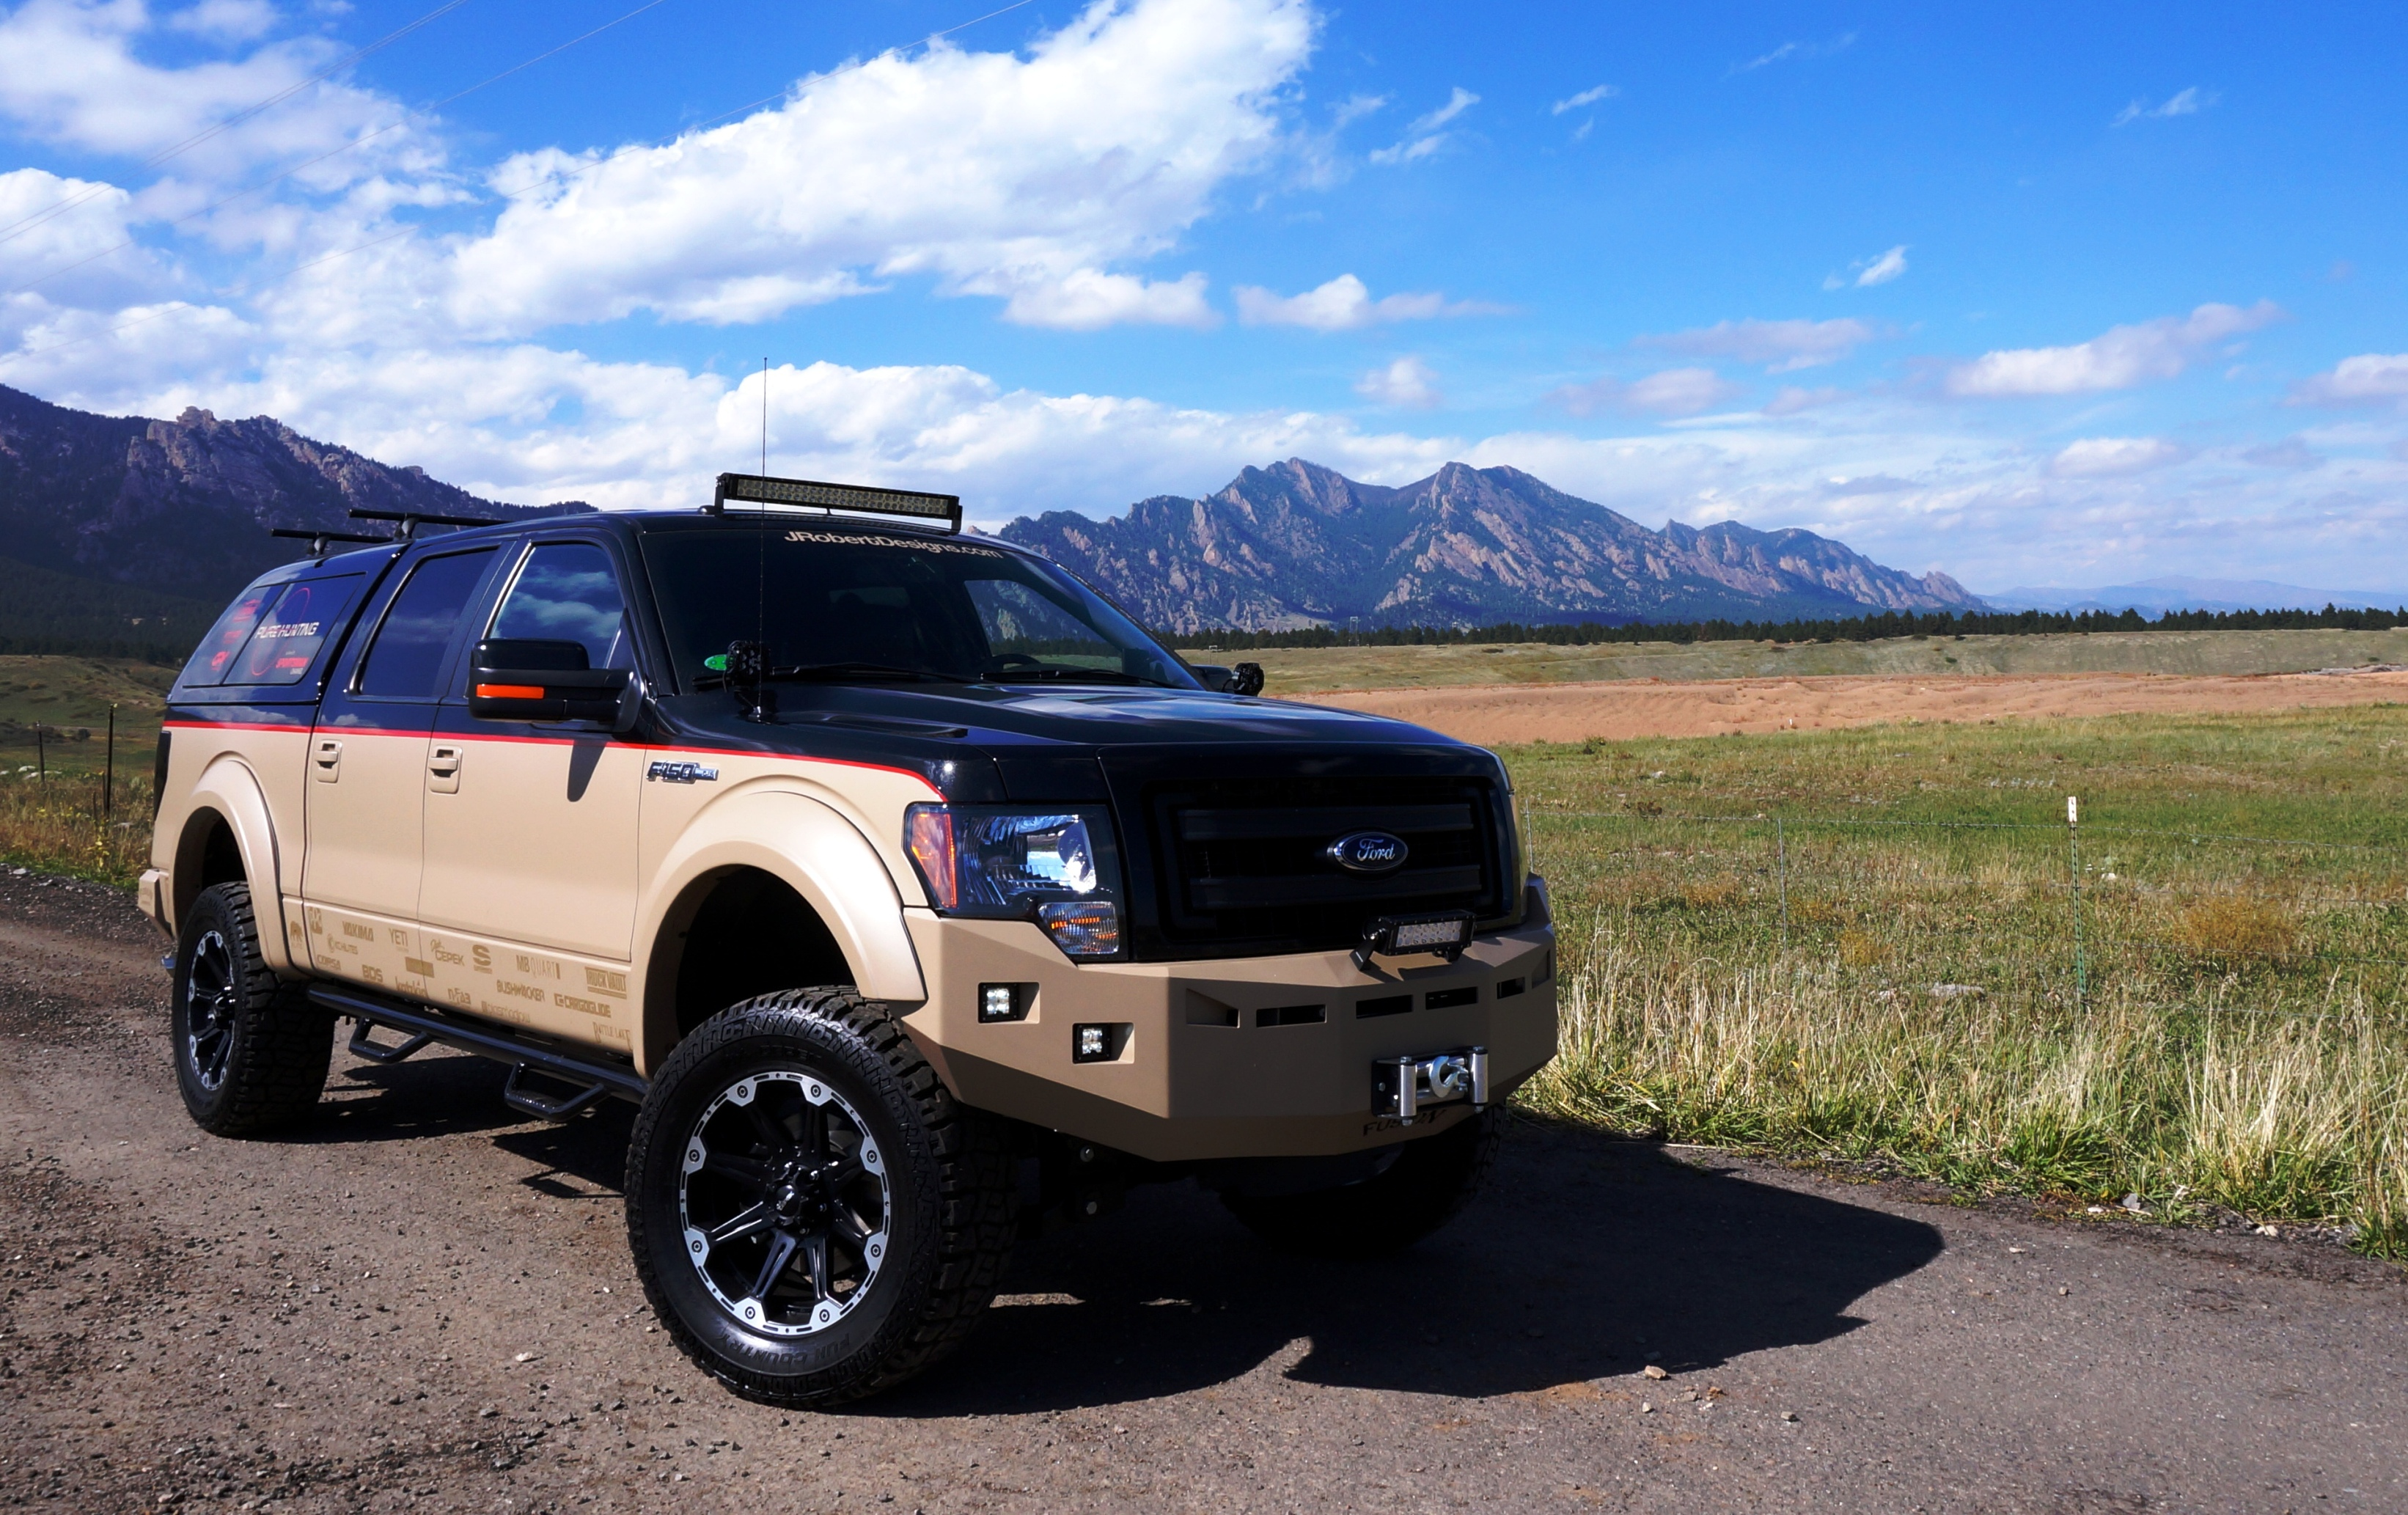 Ford Truck Enthusiast >> Ultimate Outdoorsmen Vehicle Unveiled in Las Vegas